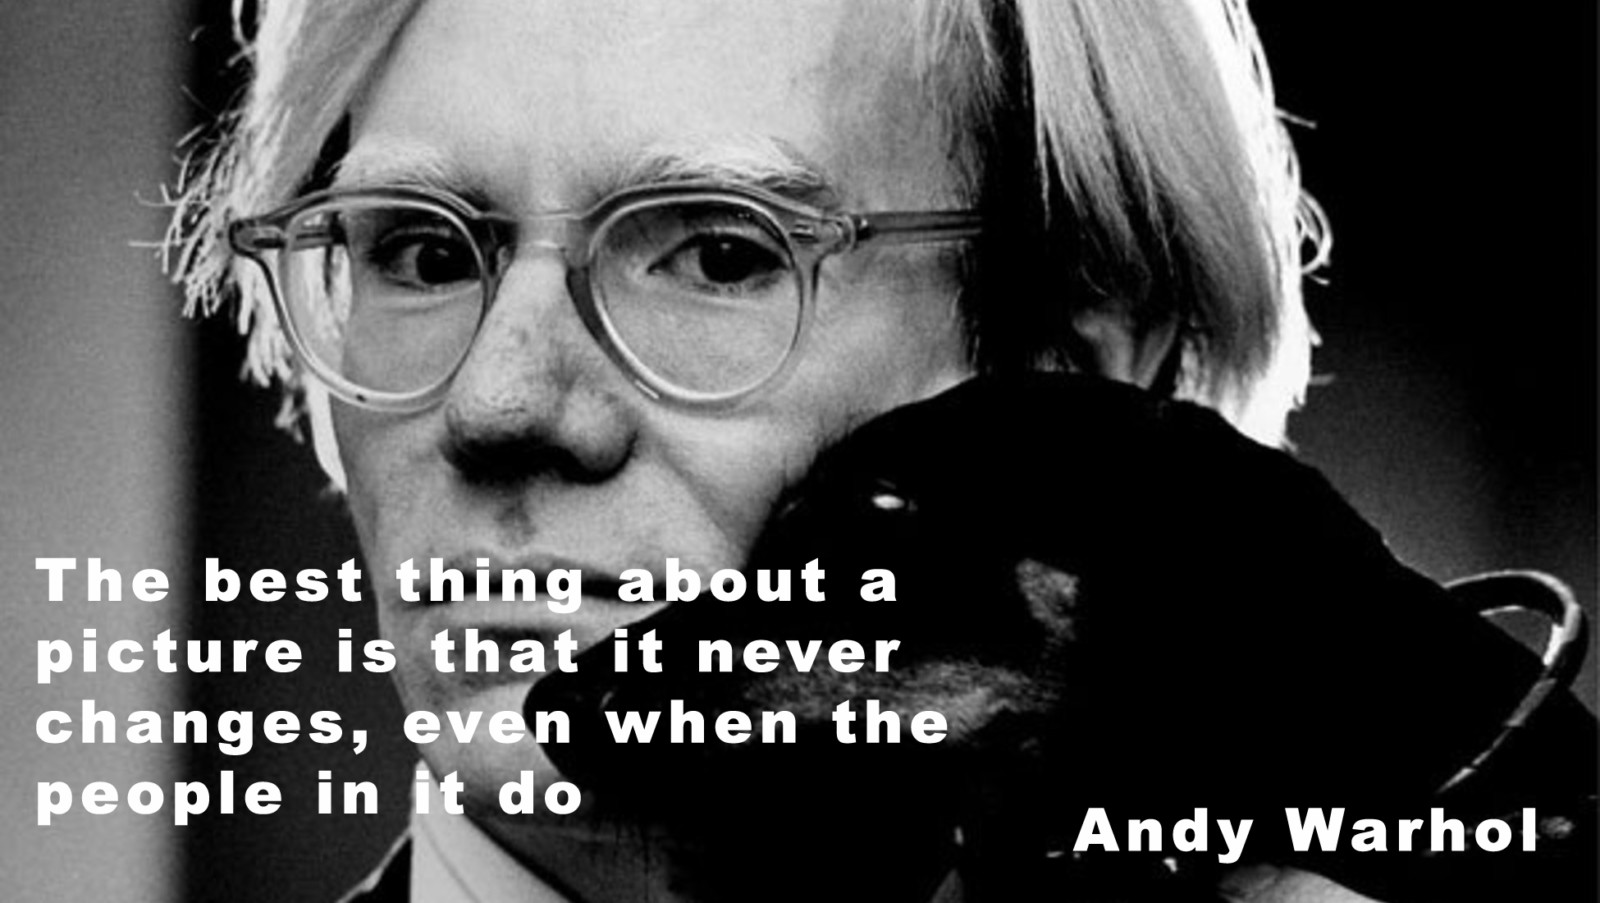 10the best thing about a picture is that it never changes even when the people in it do andy warhol